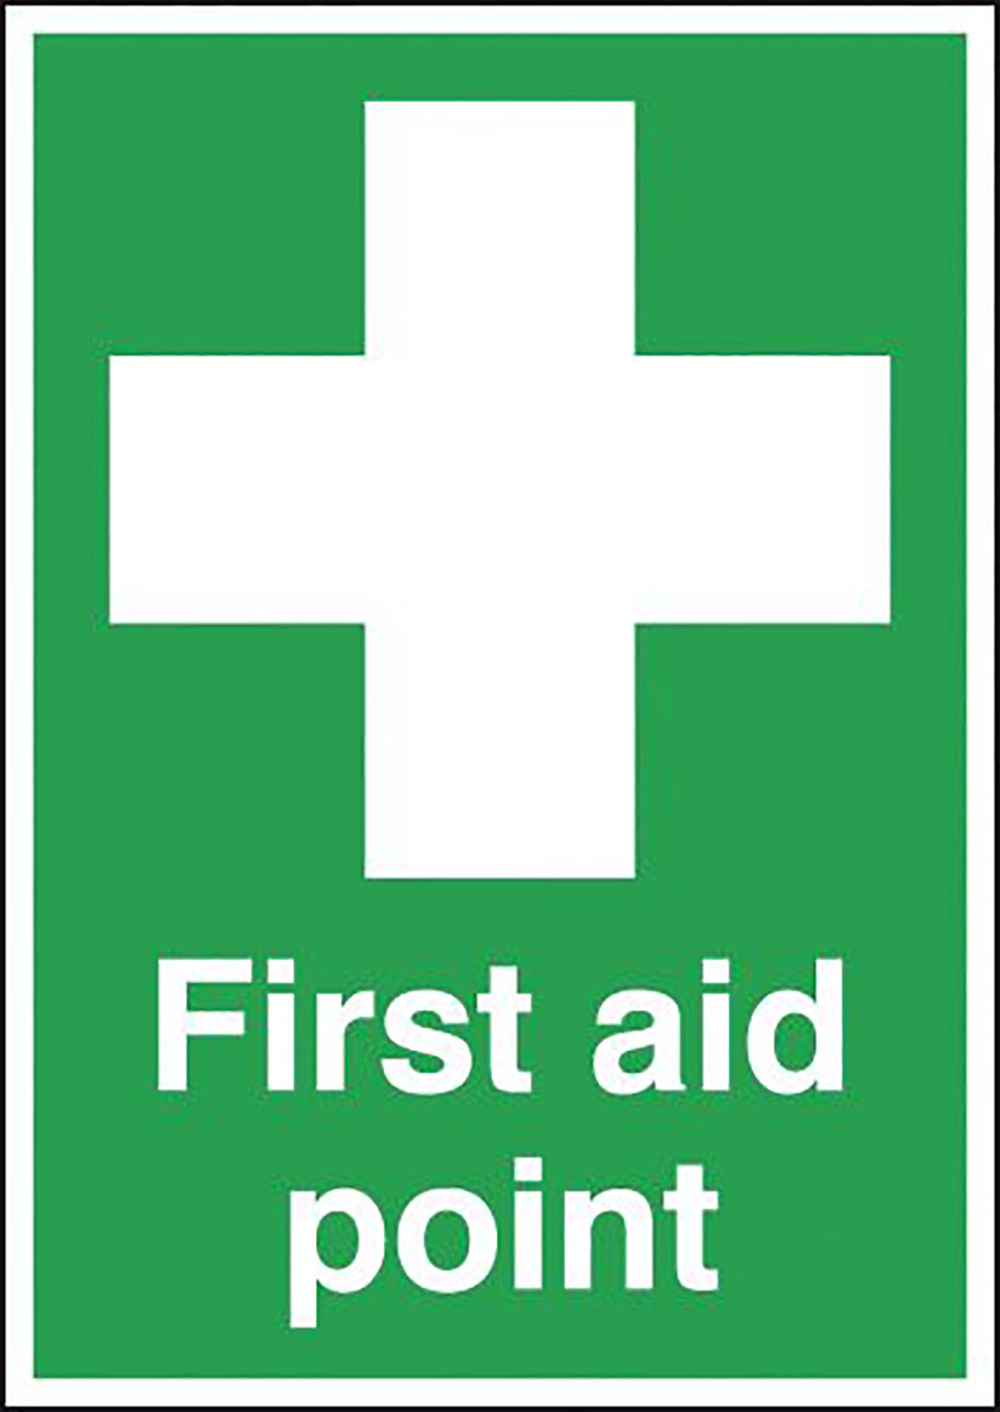 First Aid Point 210x148mm 1.2mm Rigid Plastic Safety Sign